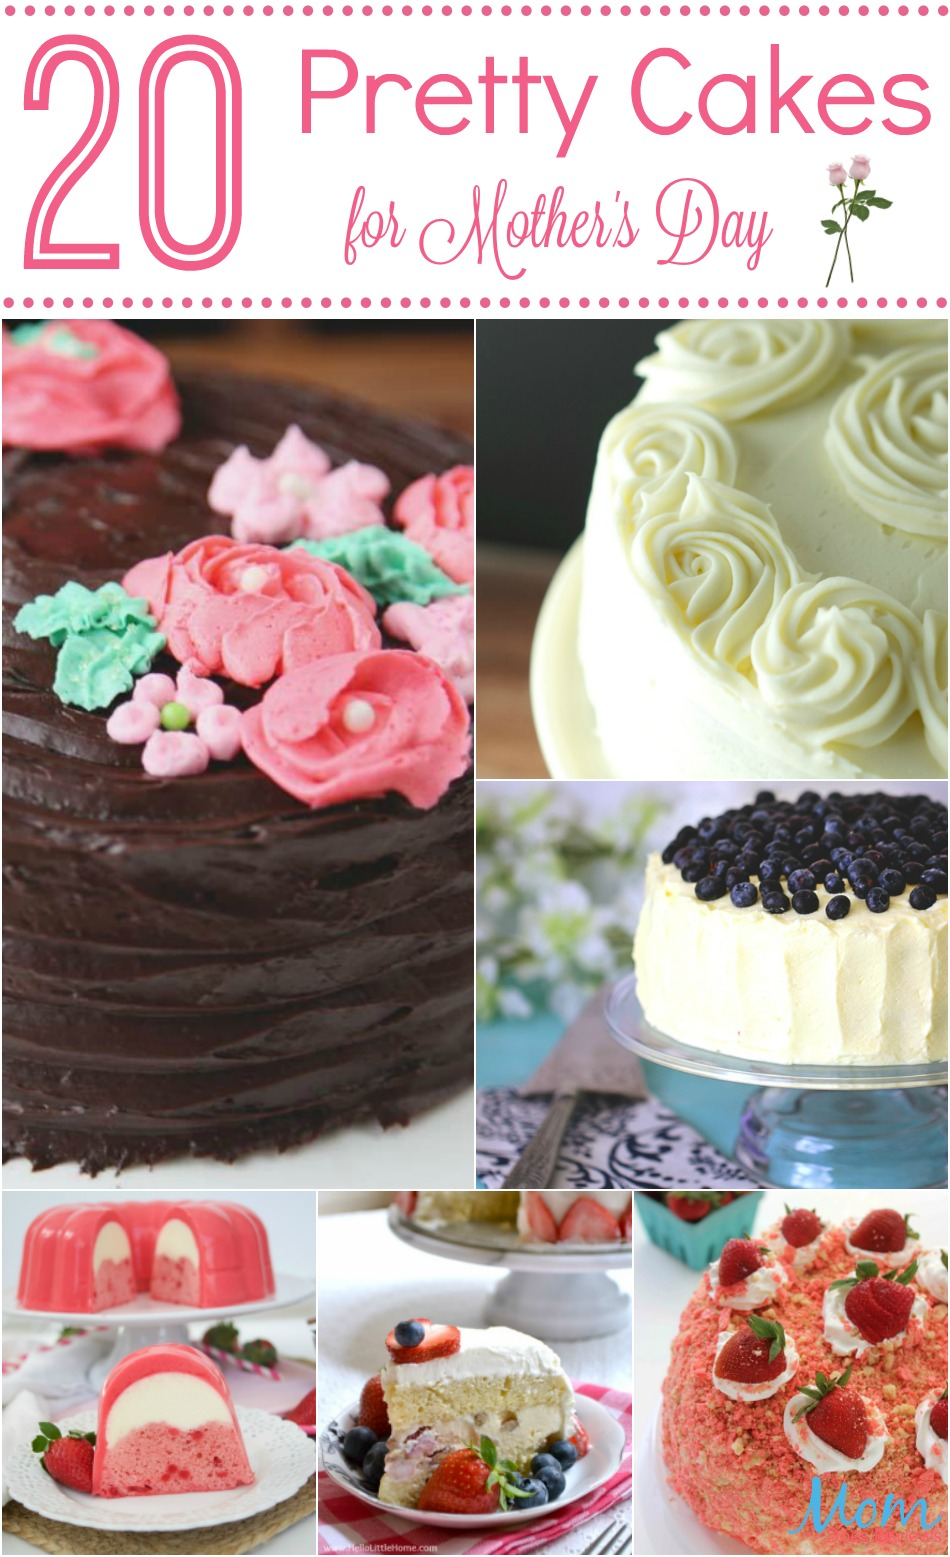 20 Pretty Cakes for Mother's Day